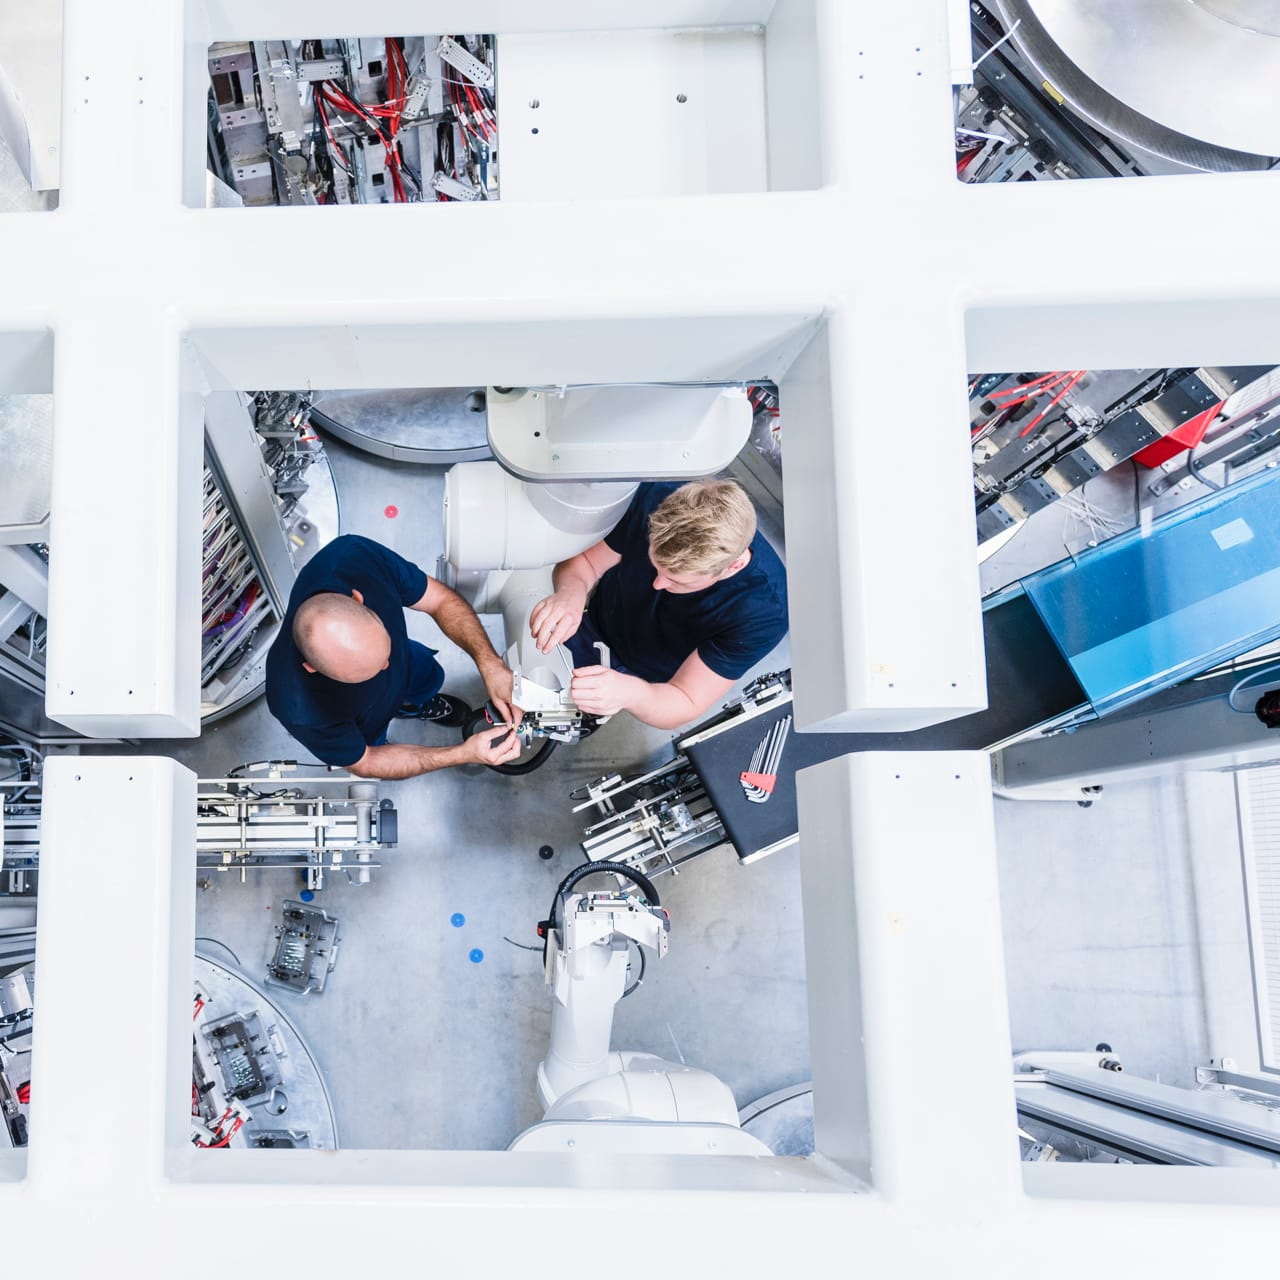 Overhead shot of two men implementing robotic processes